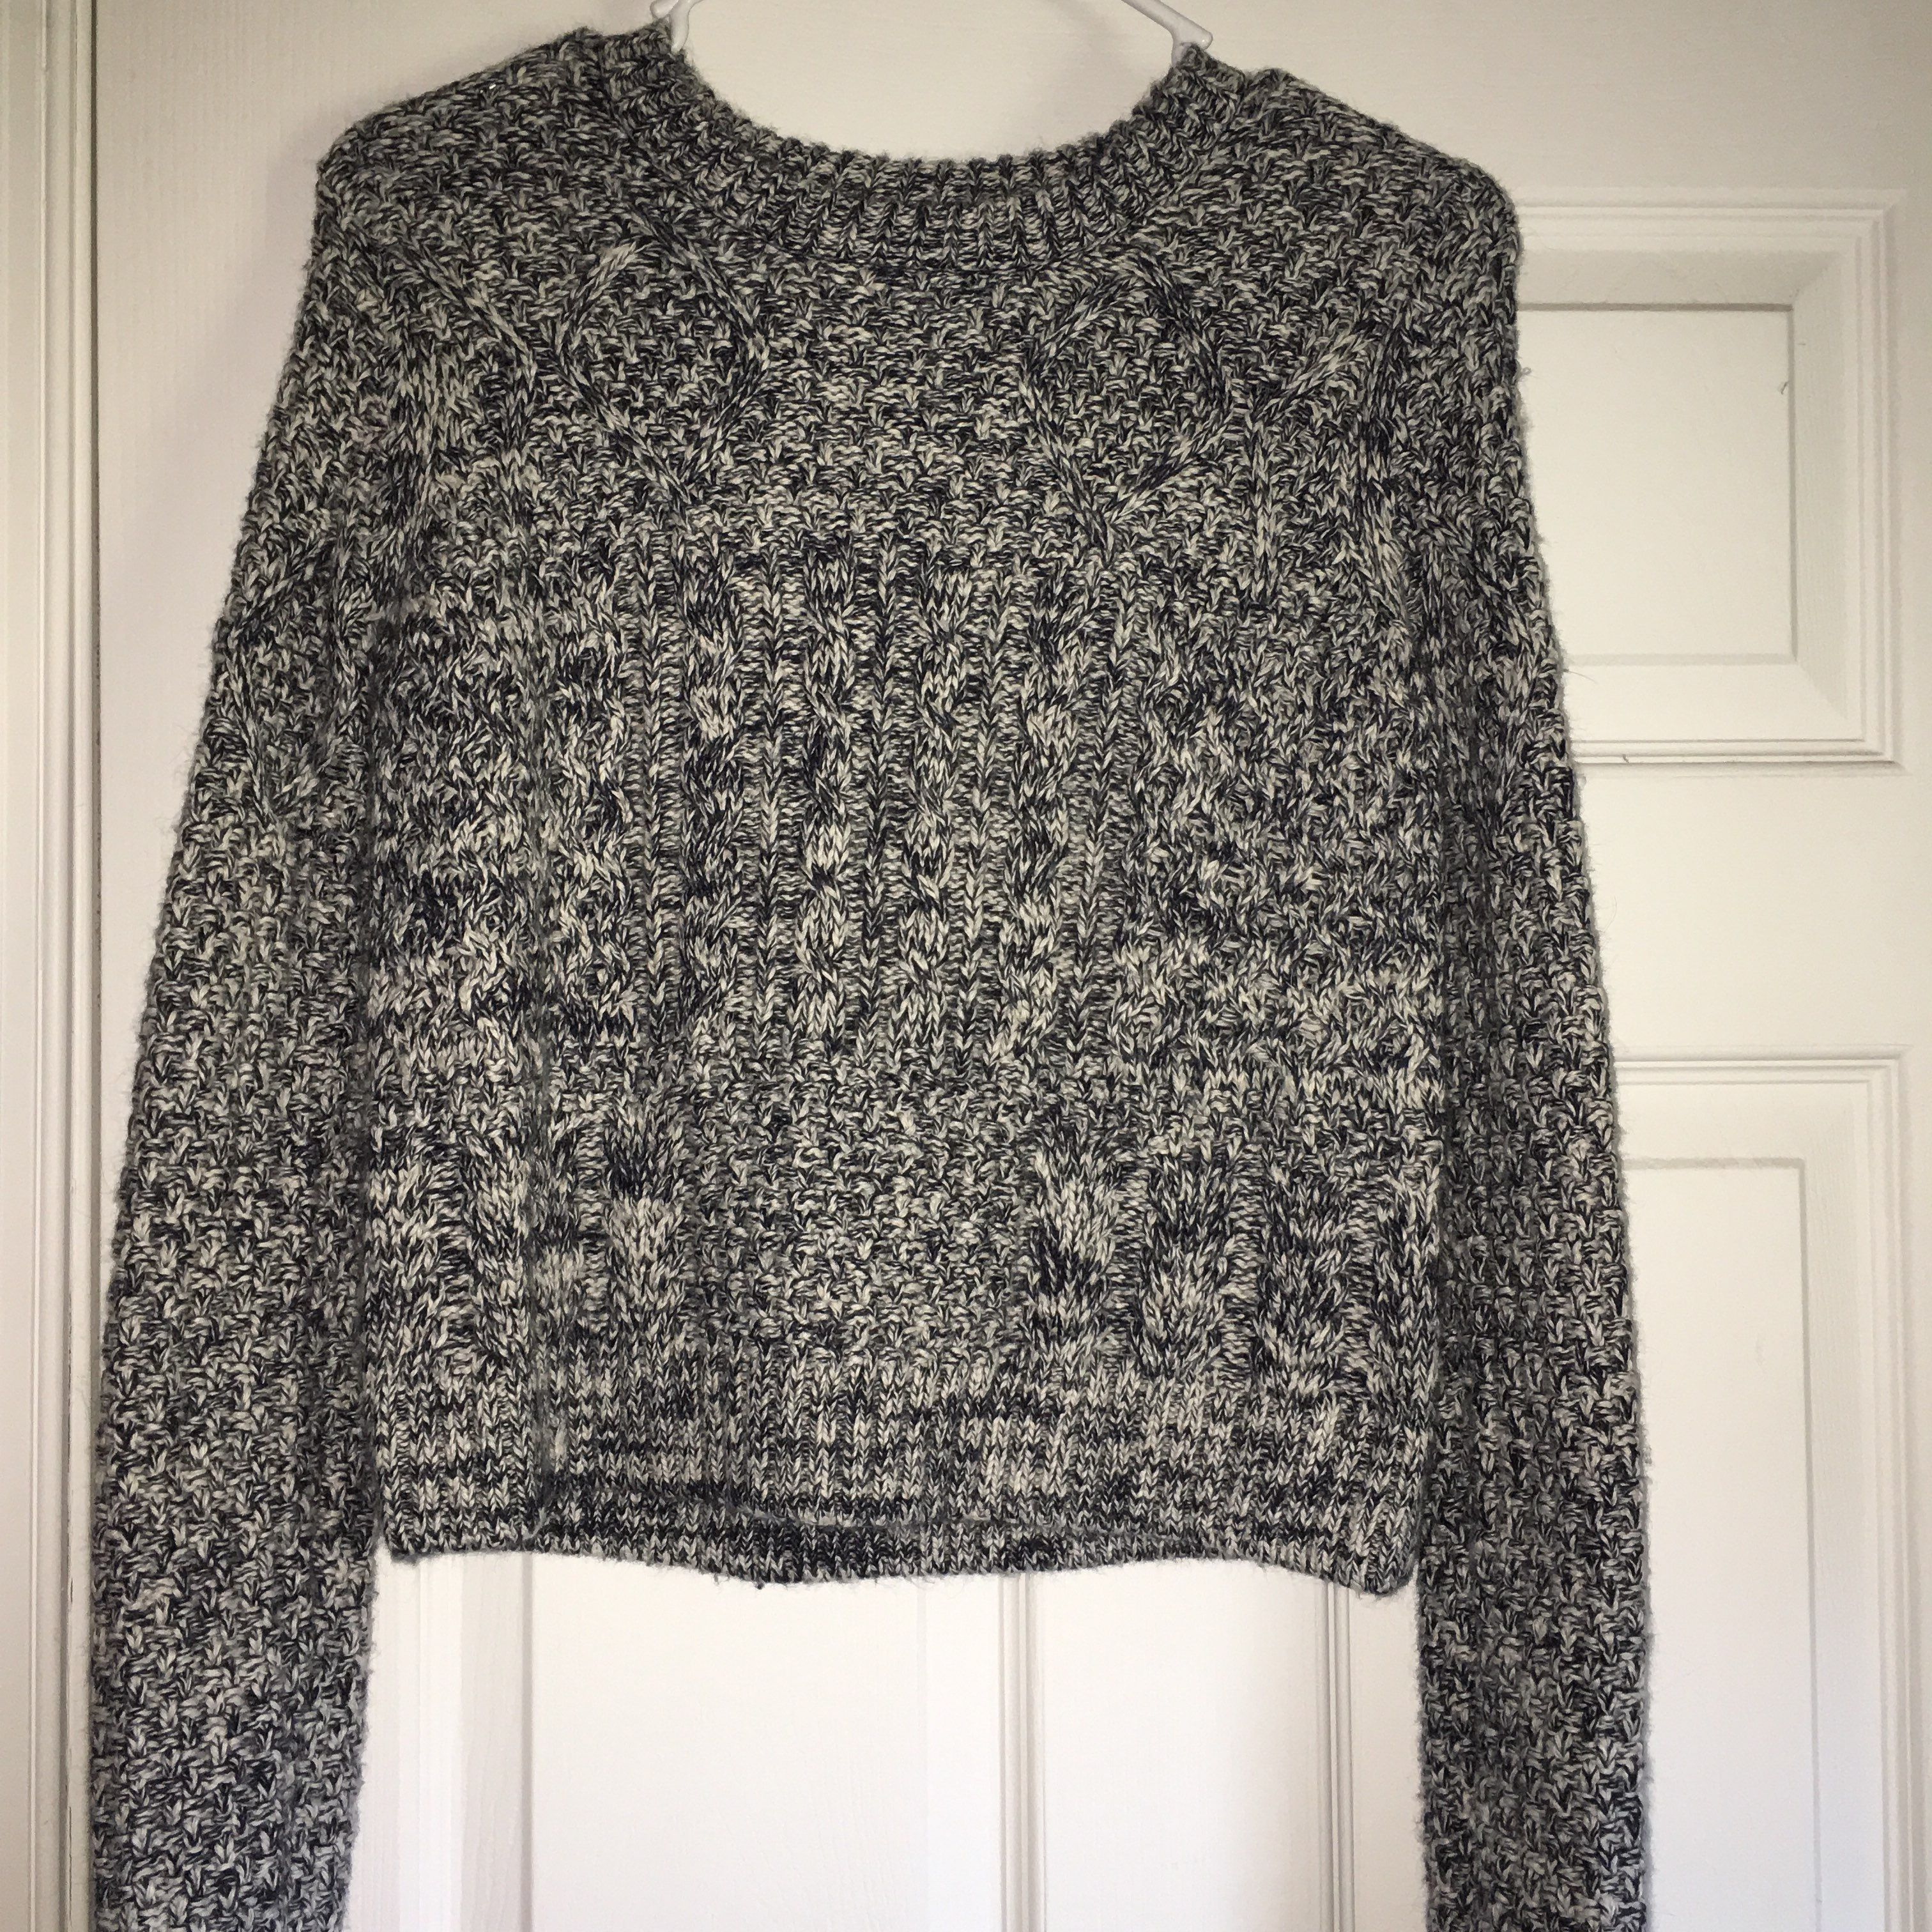 Cute Chunky Knit Cropped Sweater - Mercari: BUY & SELL THINGS YOU LOVE